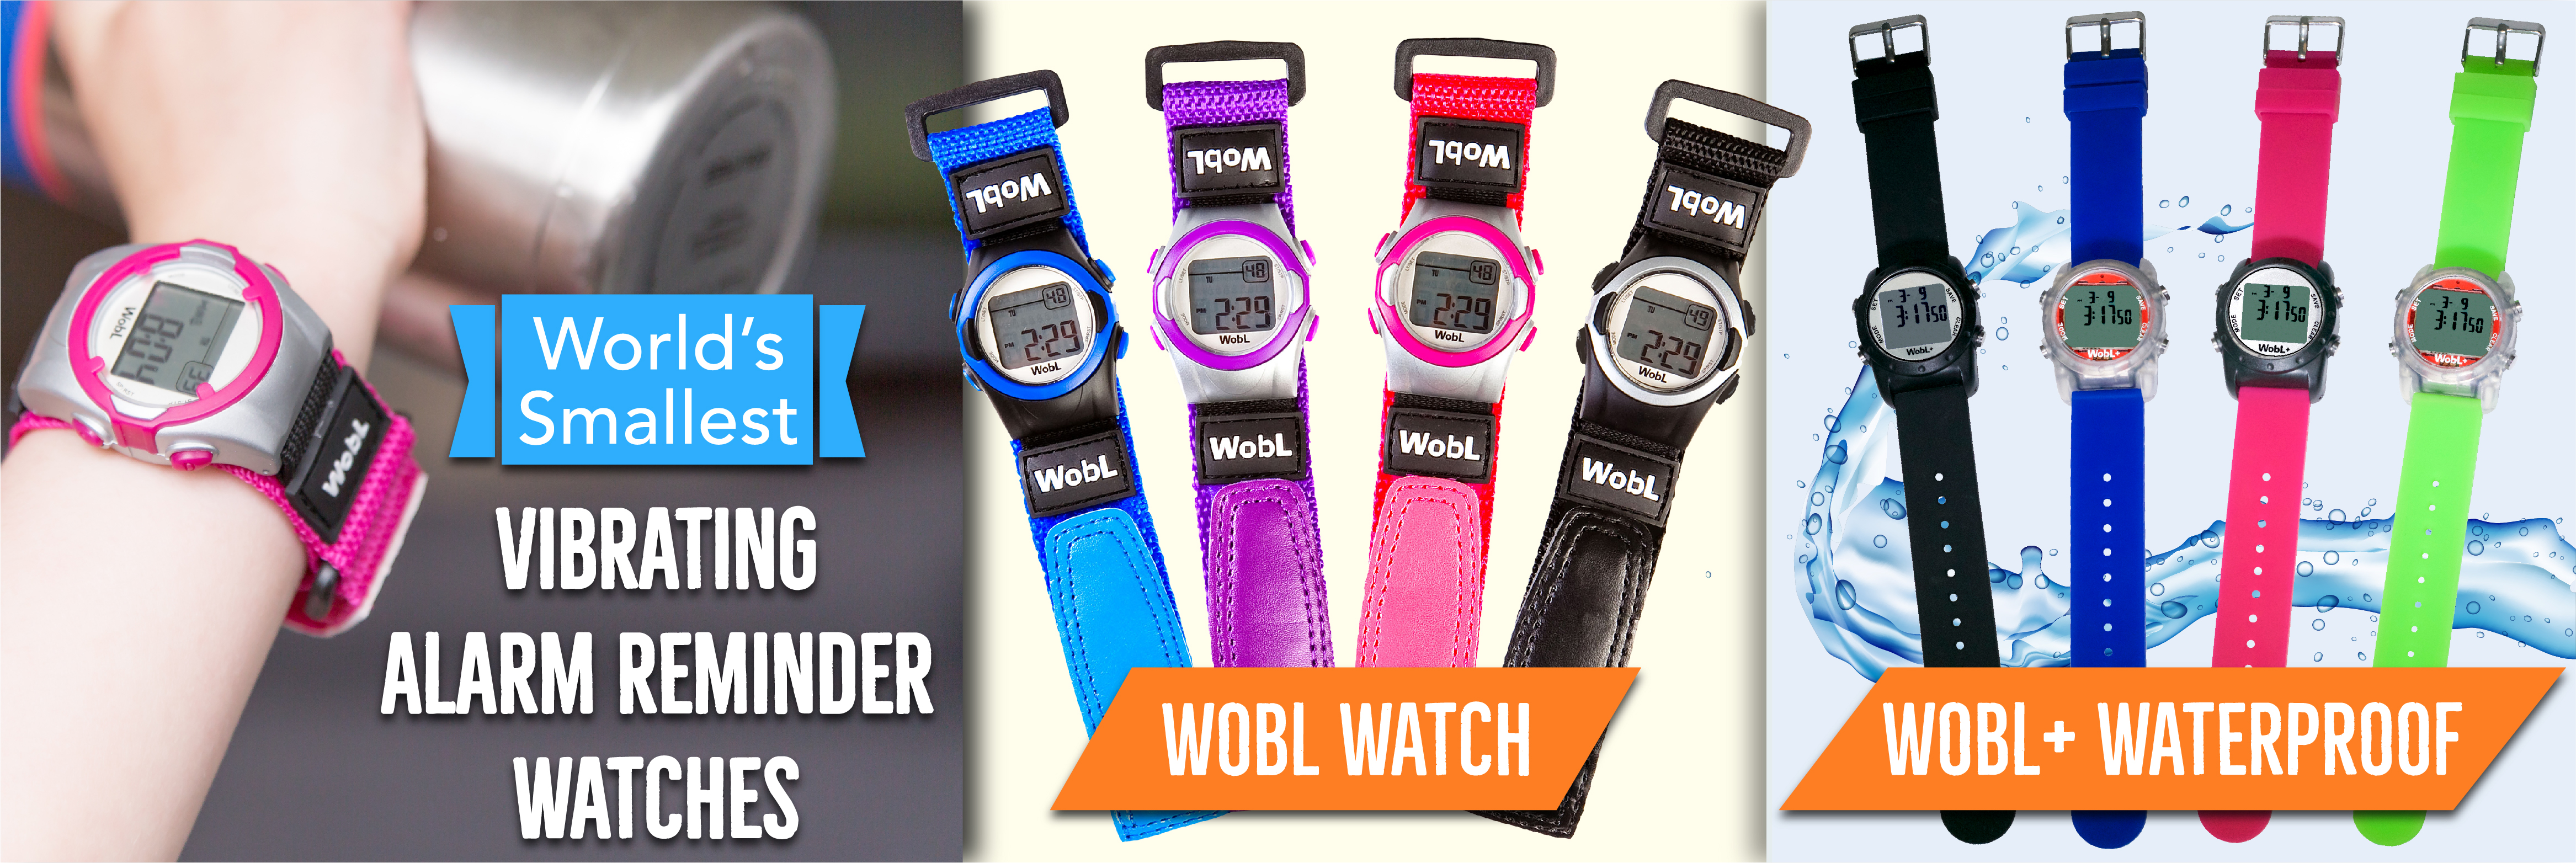 WobL and WobL+ watches have audible and/or vibration alarm settings; waterproof model available.